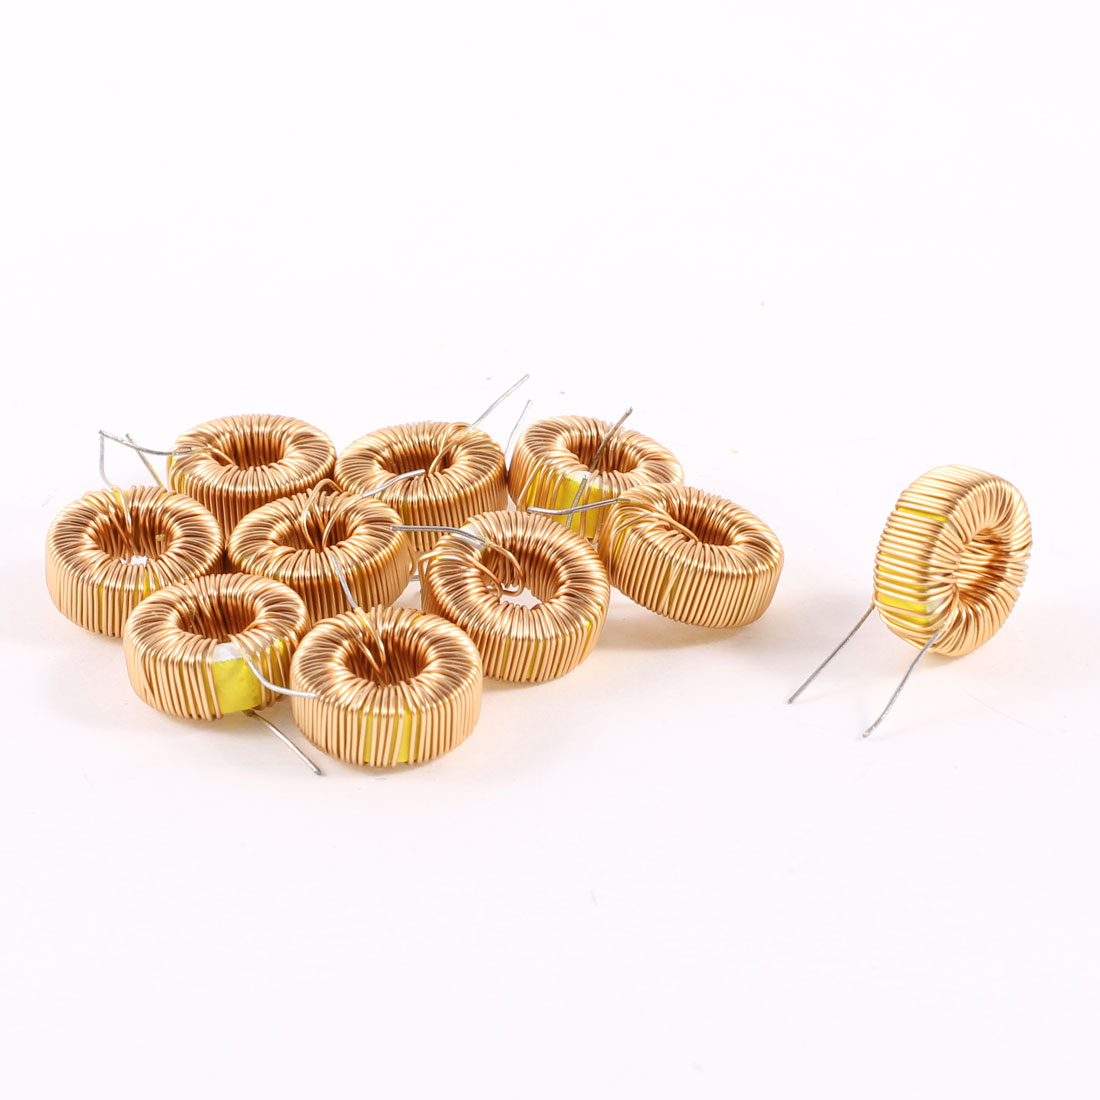 10 Pcs Toroid Core Inductor Wire Wind Wound 220uH 31mOhm 0.5A Coil